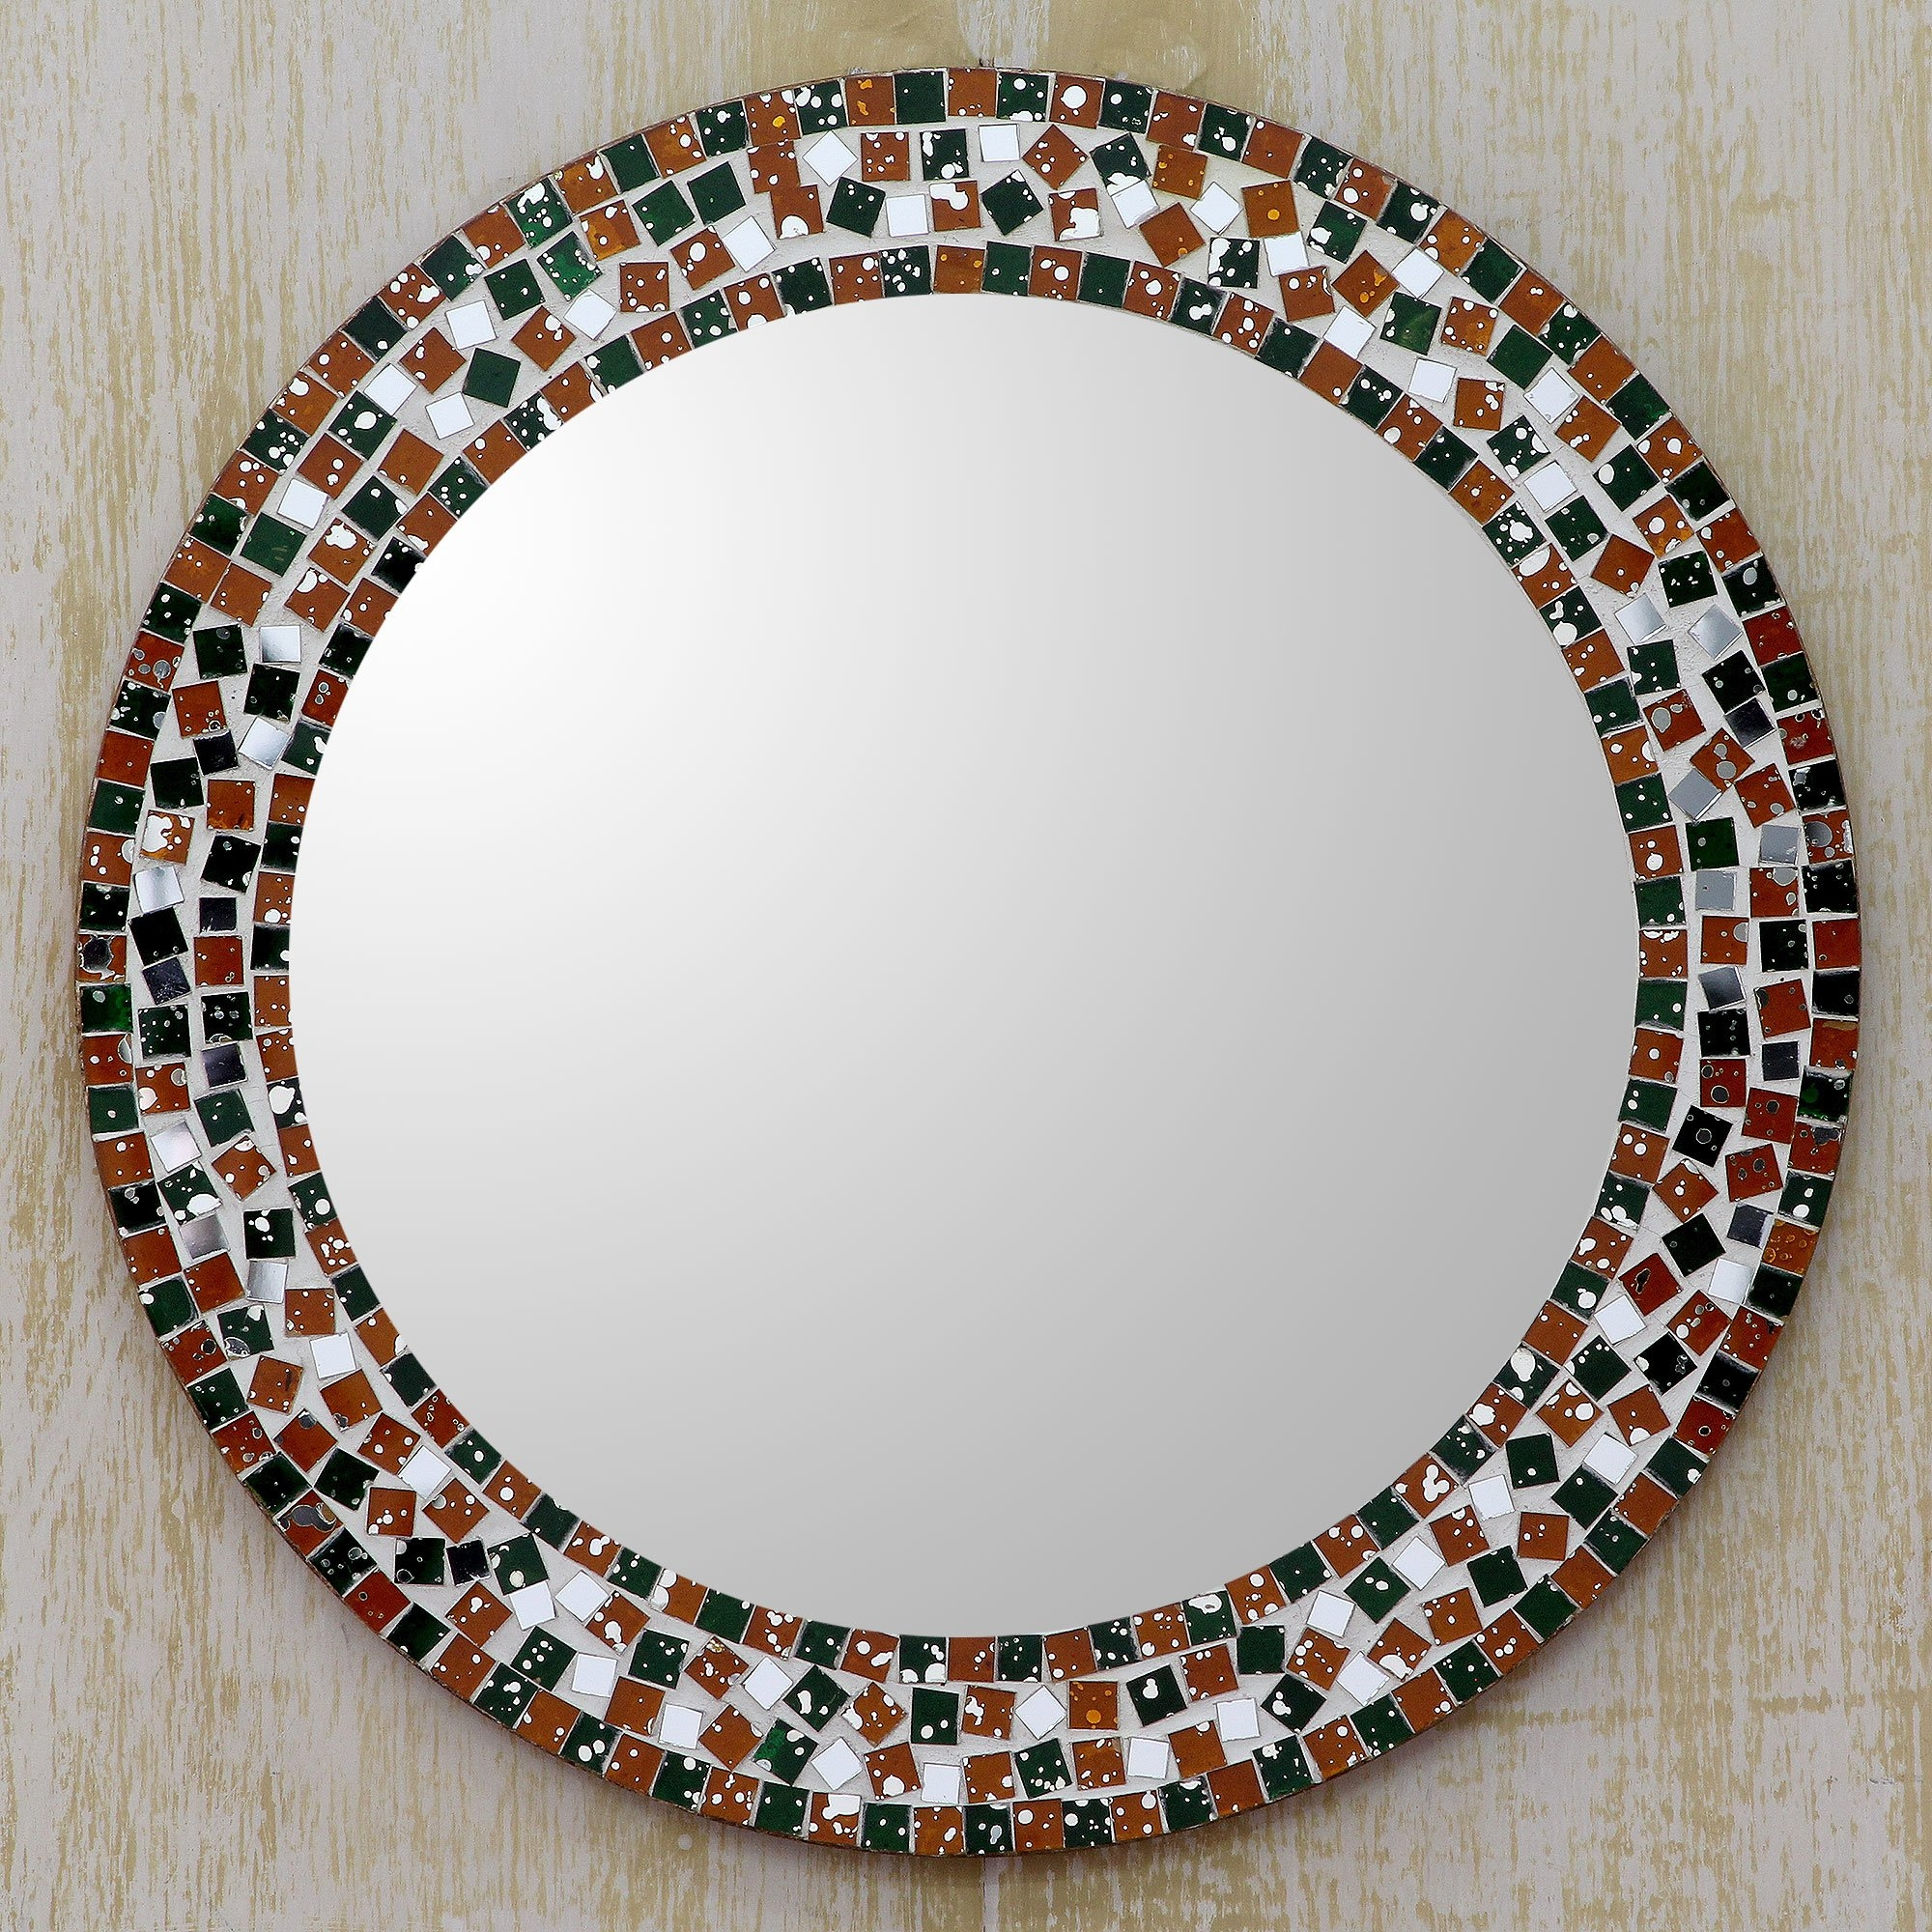 Novica Forest Mosaic Artisan Crafted Round Wall Mirror With Glass With Regard To Mosaic Wall Mirror (View 13 of 15)